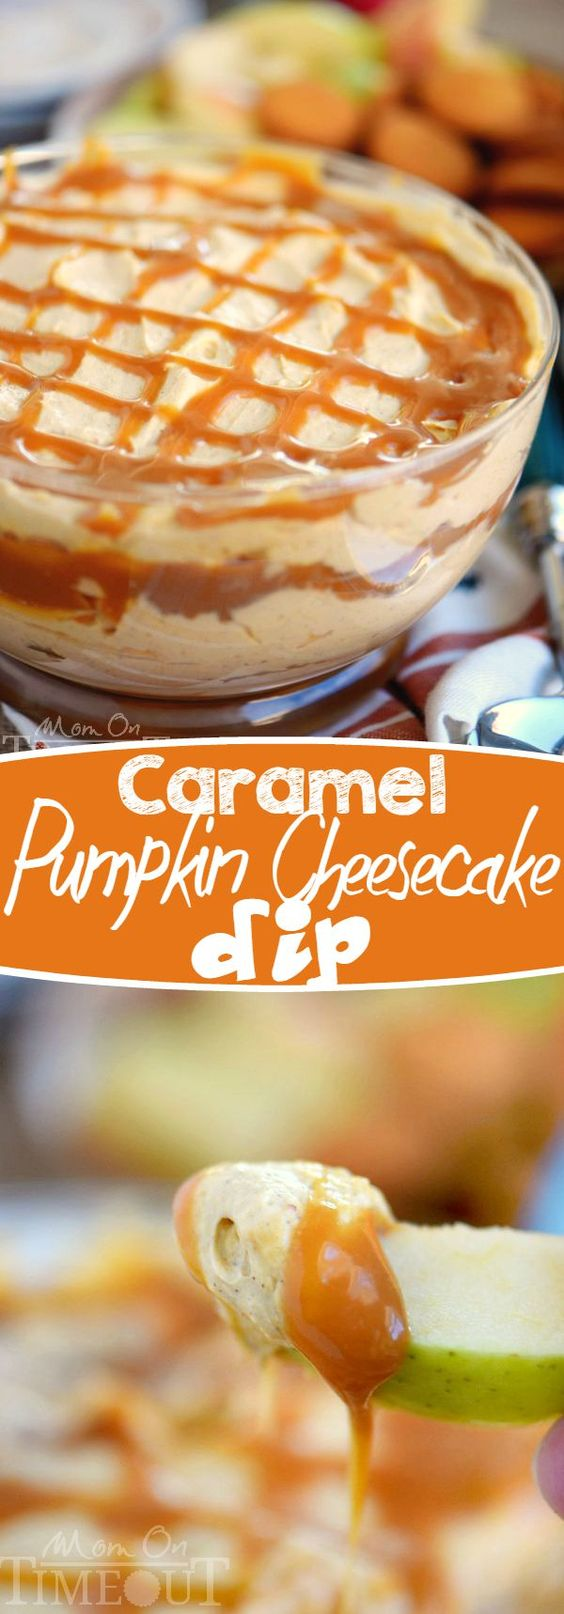 Thanksgiving Desserts: Caramel Pumpkin Cheesecake Dip